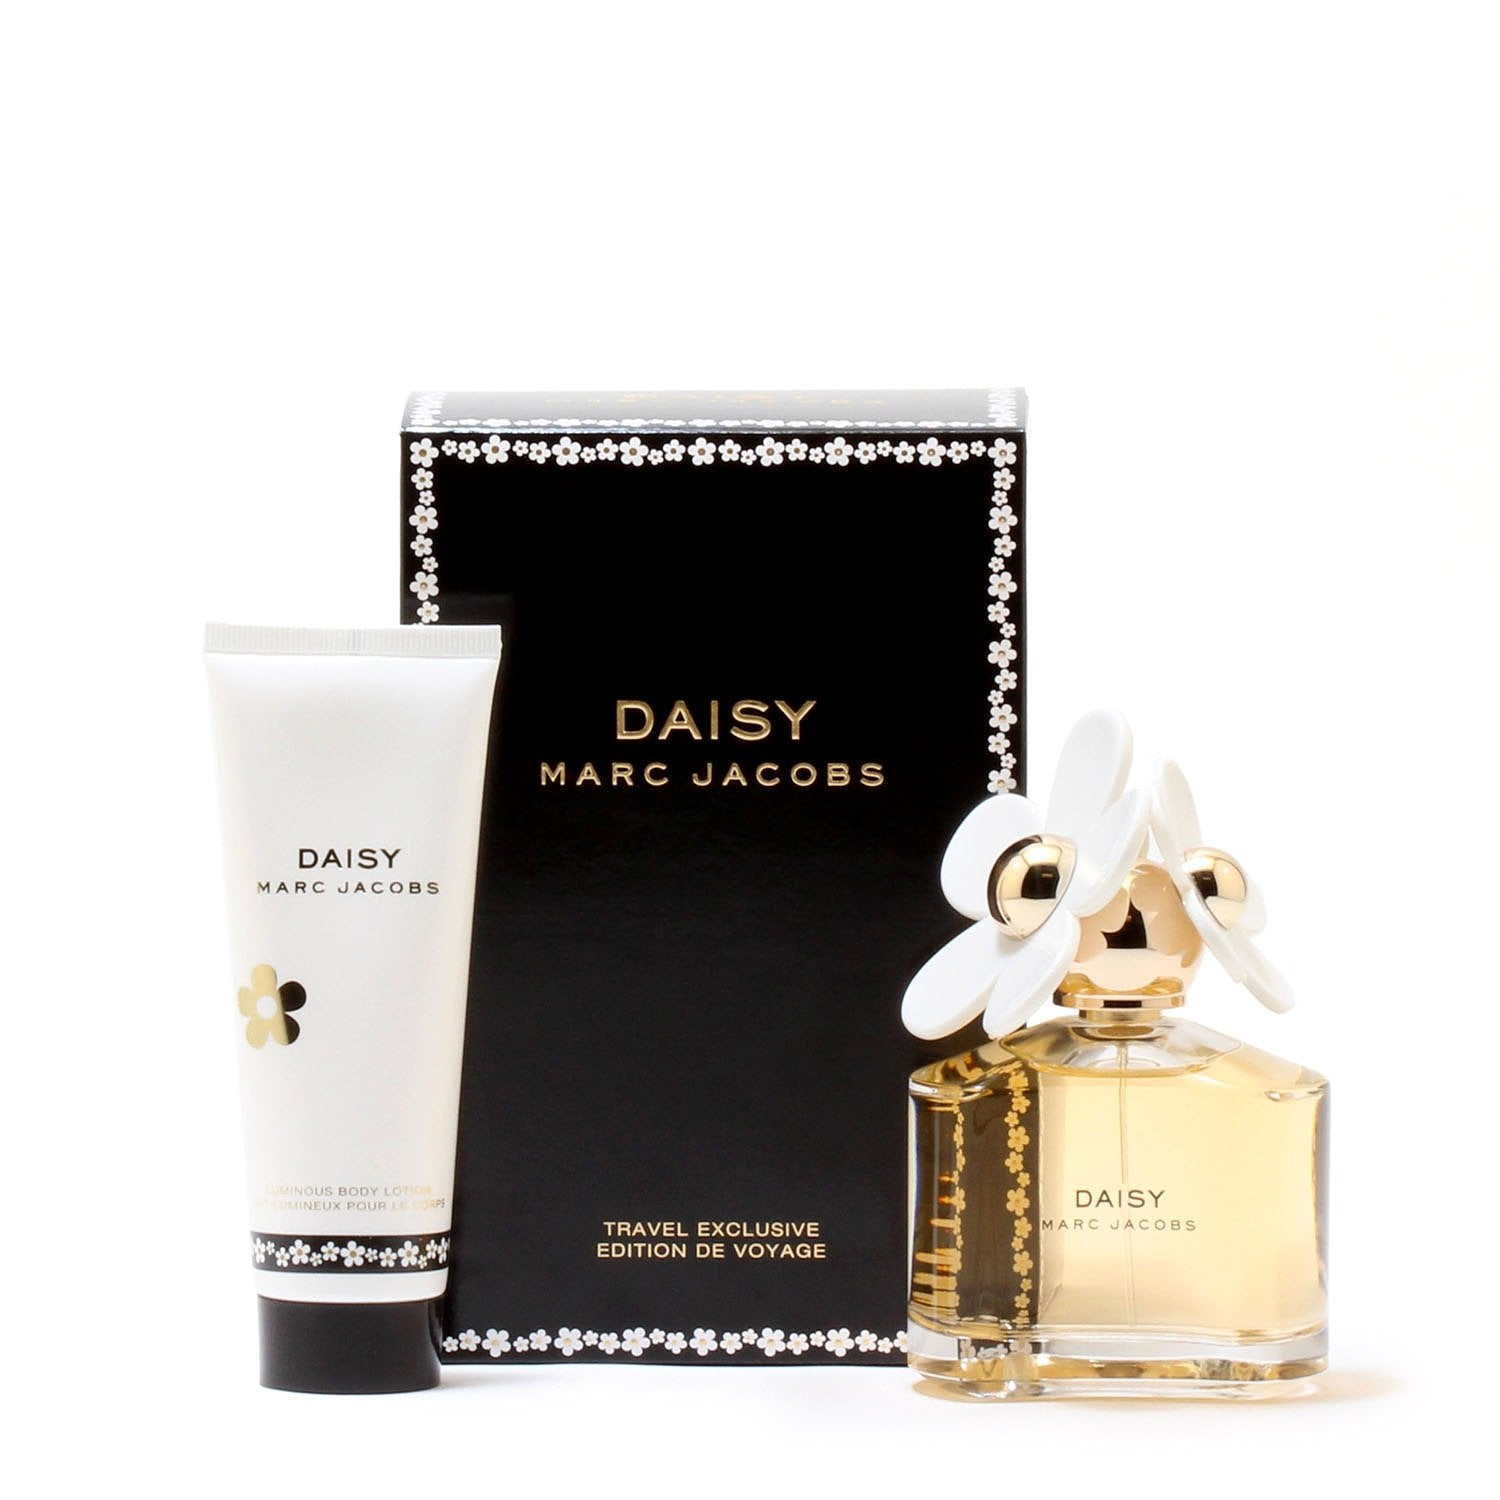 Perfume Sets - DAISY FOR WOMEN BY MARC JACOBS - TRAVEL EDITION GIFT SET